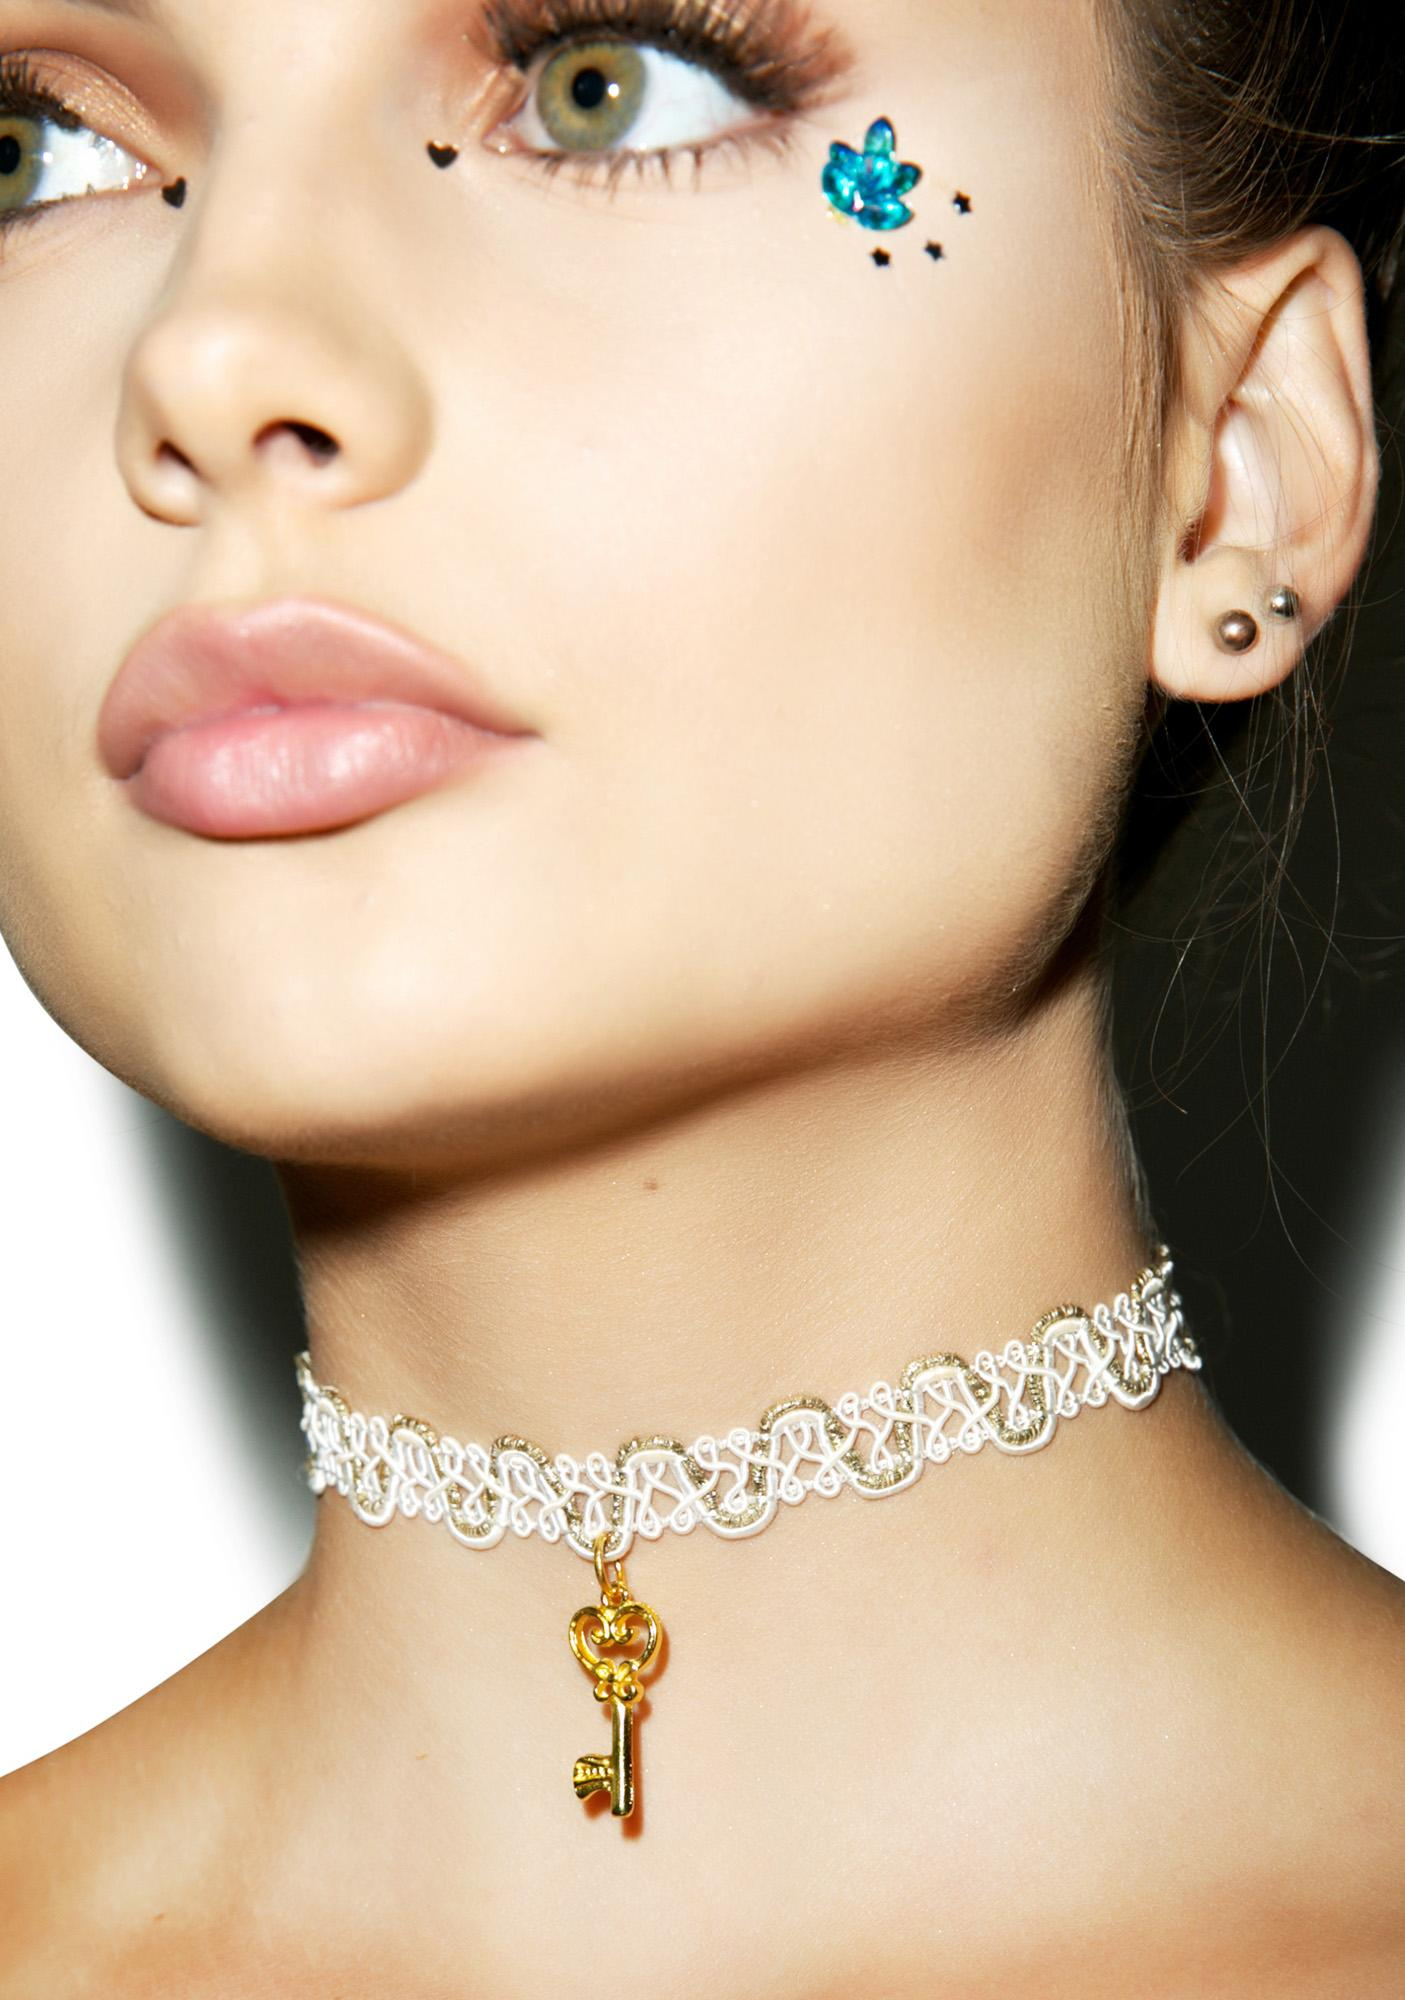 Unlock My Heart Choker